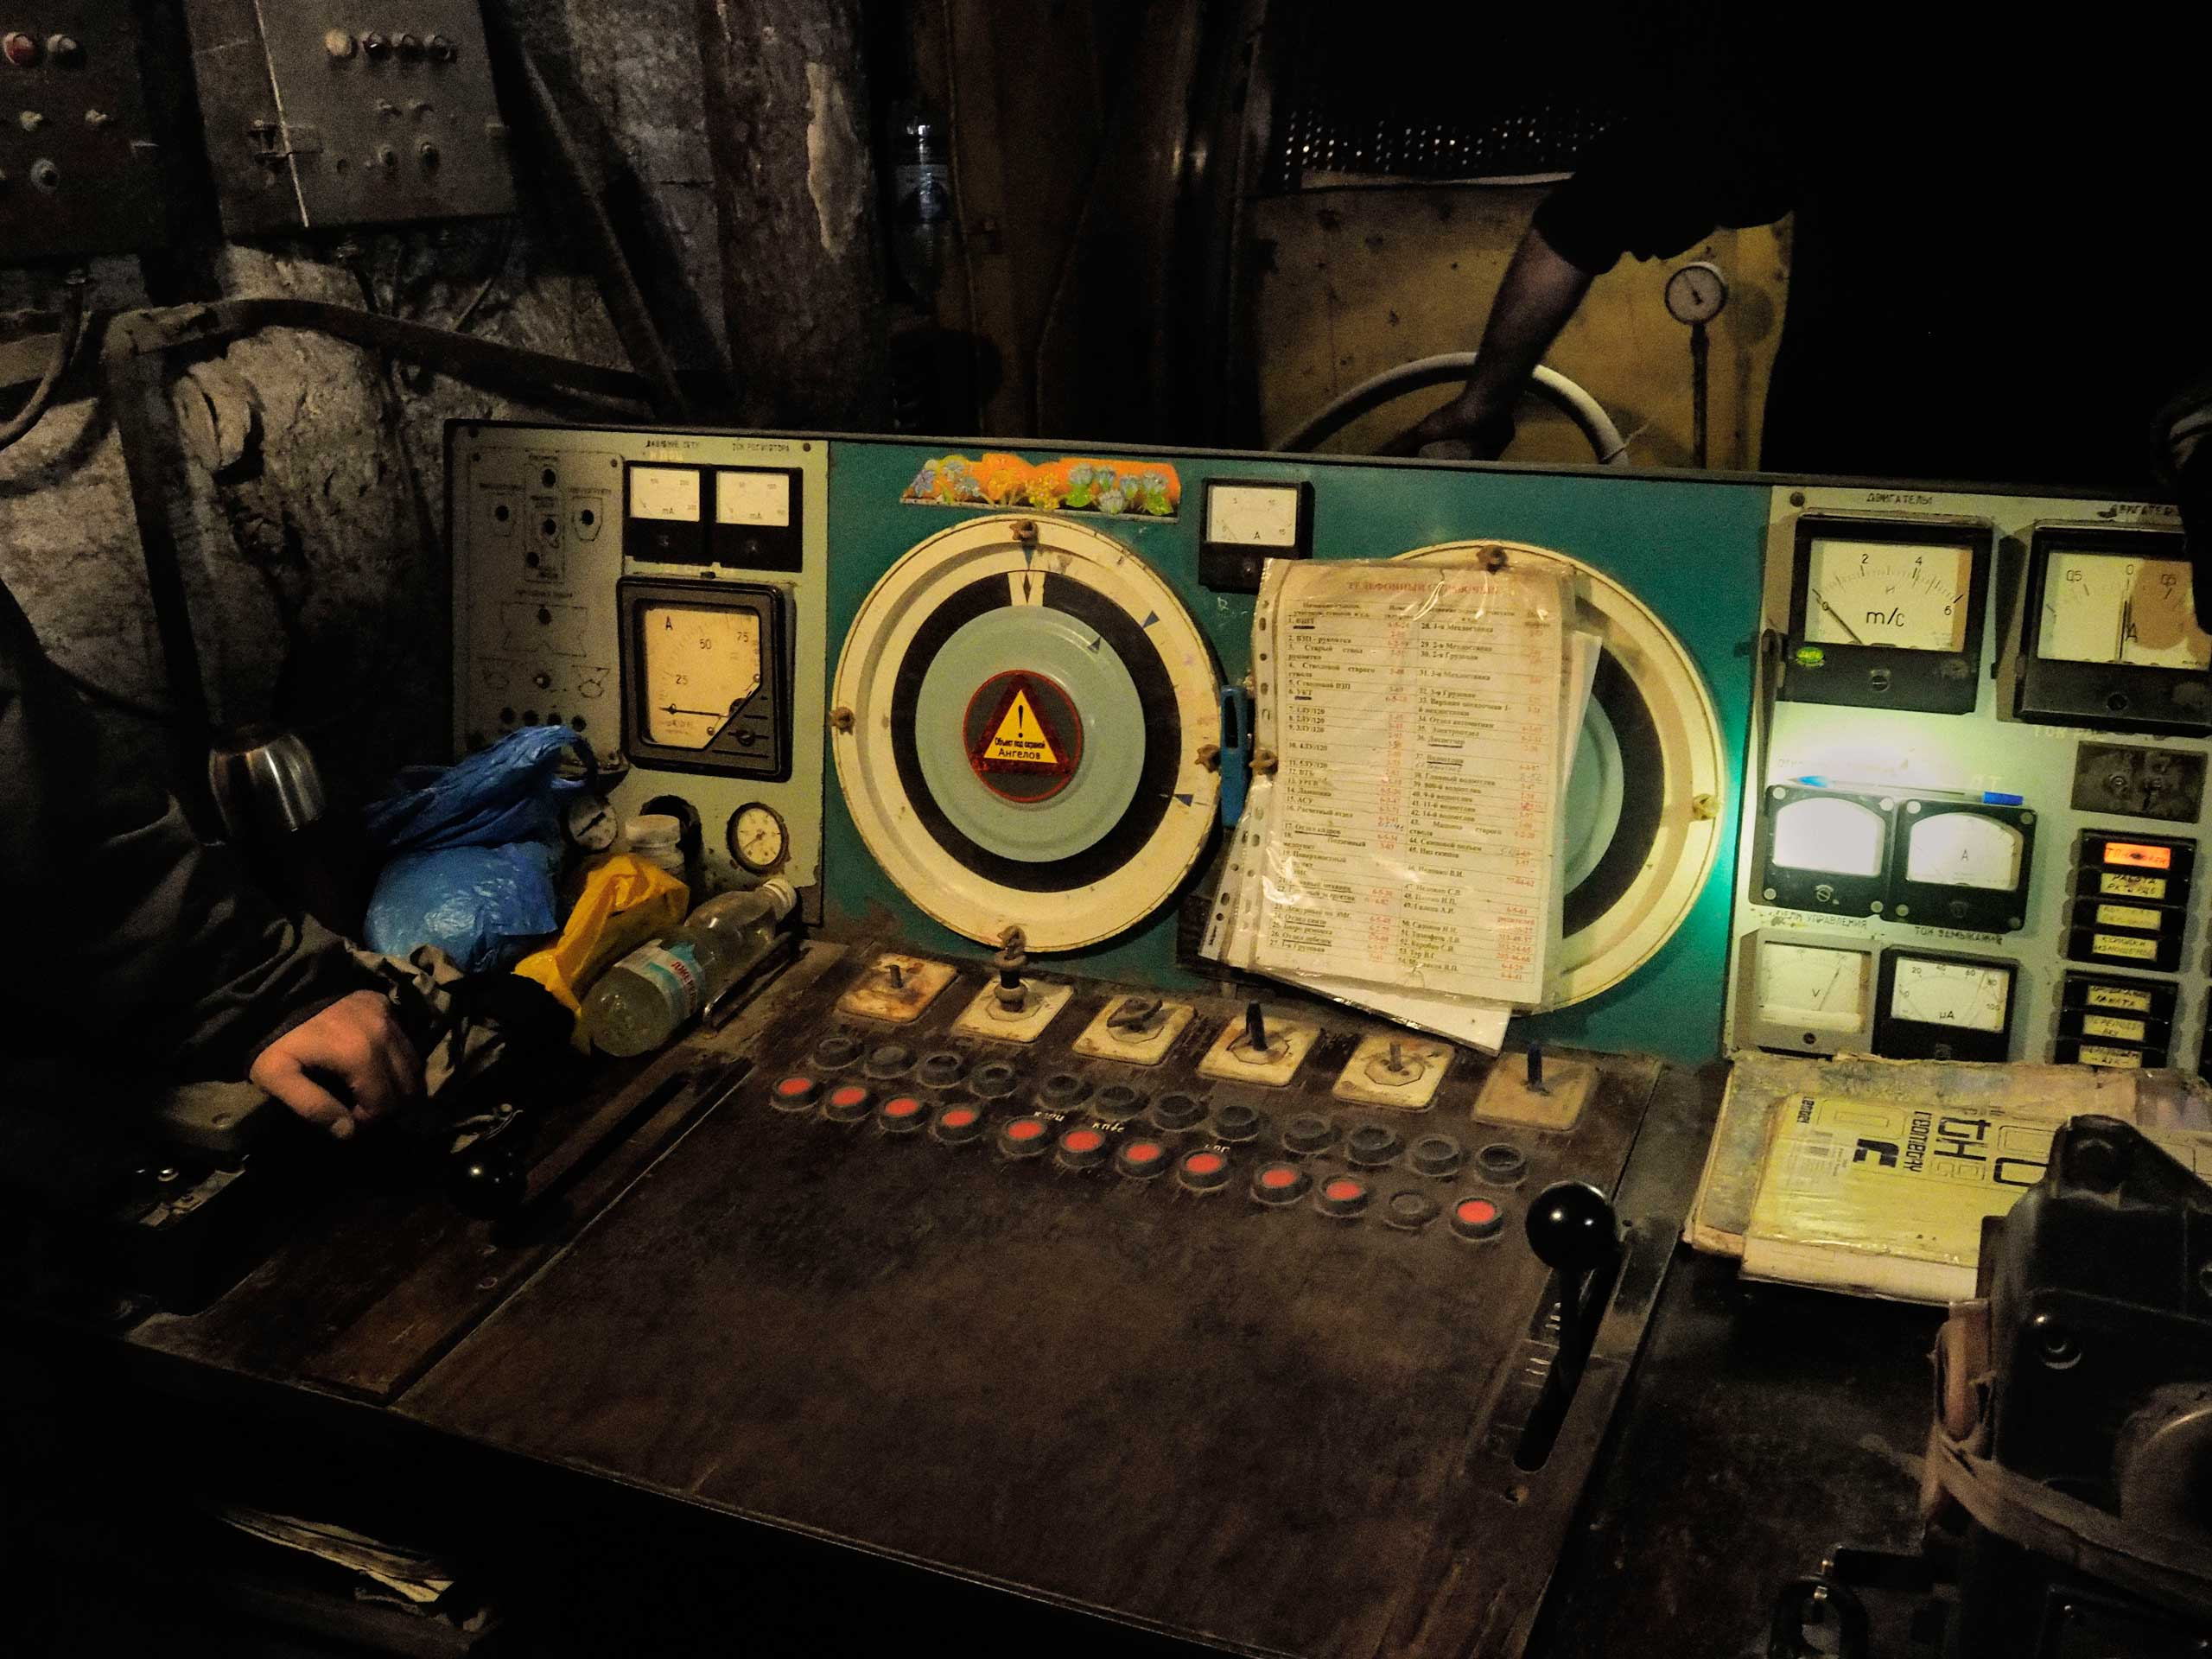 The control panel for the cable car at the 500-meter level, seen during the evacuation process. Petrovskyi district, Donetsk, Ukraine. Nov. 22, 2014.